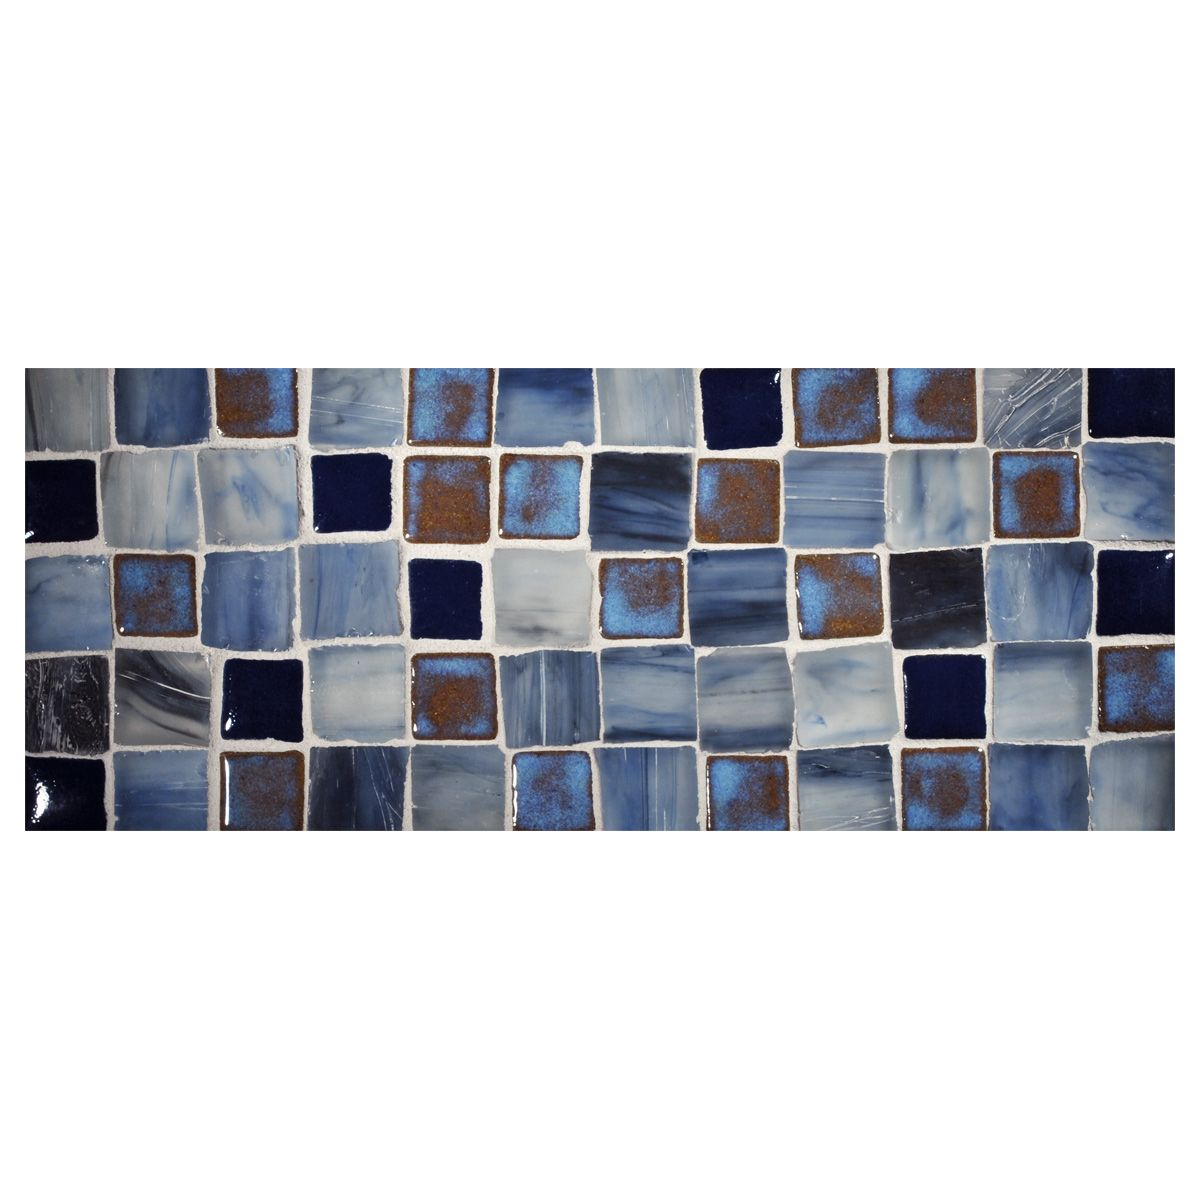 Prodigy Ceramic Mosaic Tile Custom Blend 1 X 1 Mosaic Tiles Mosaic Ceramic Mosaic Tile